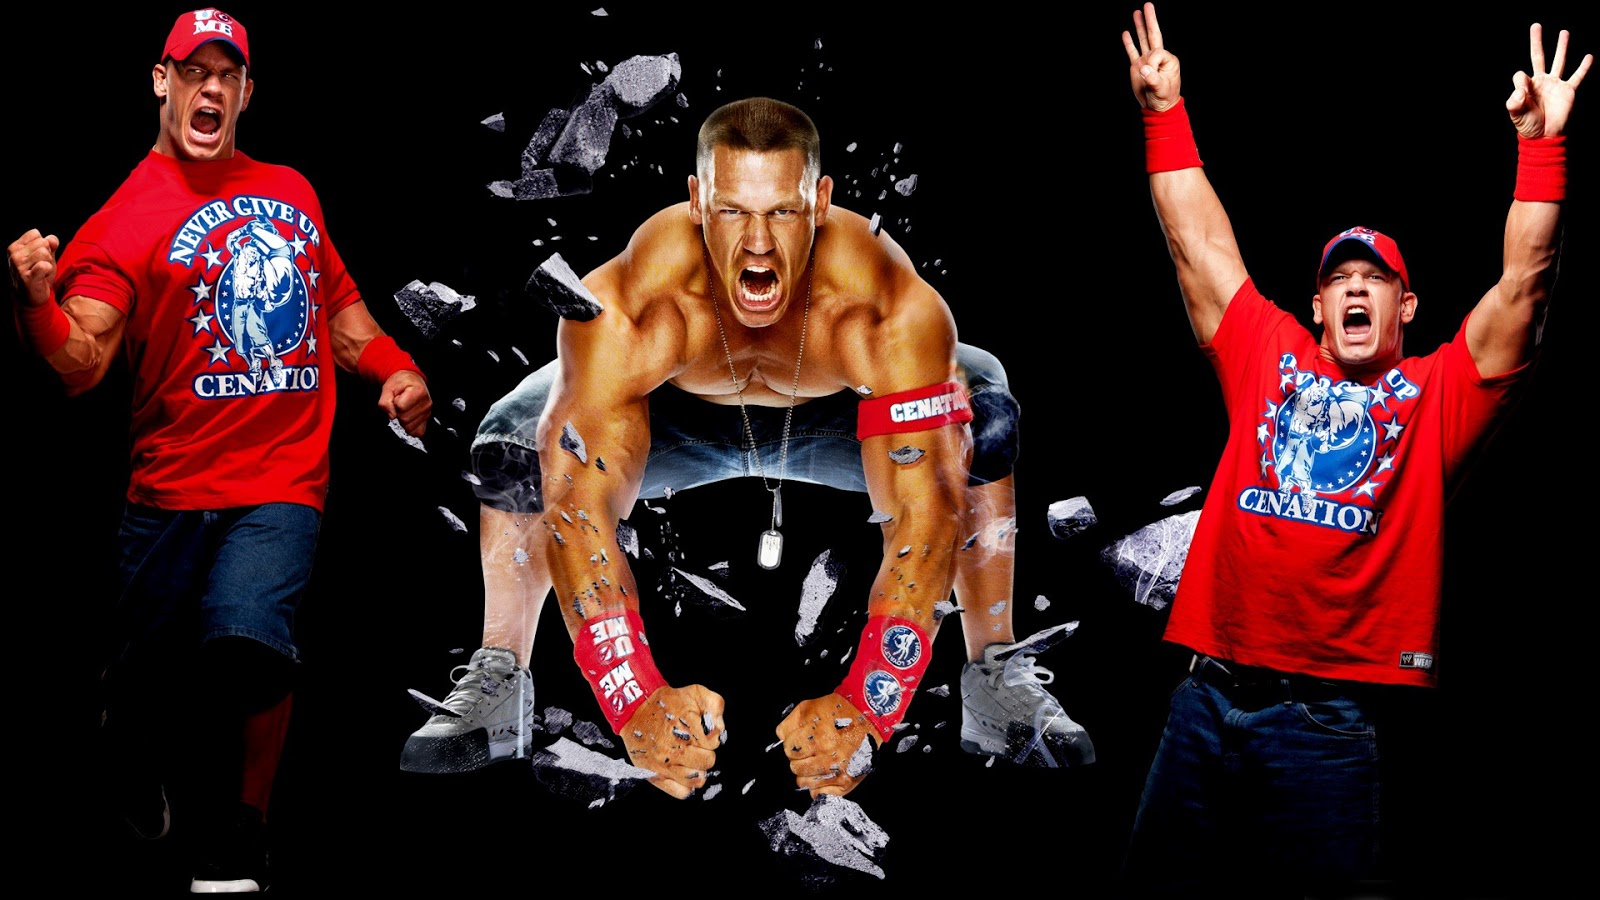 Wrestling Super Stars John Cena New HD Wallpaper 2013 1600x900